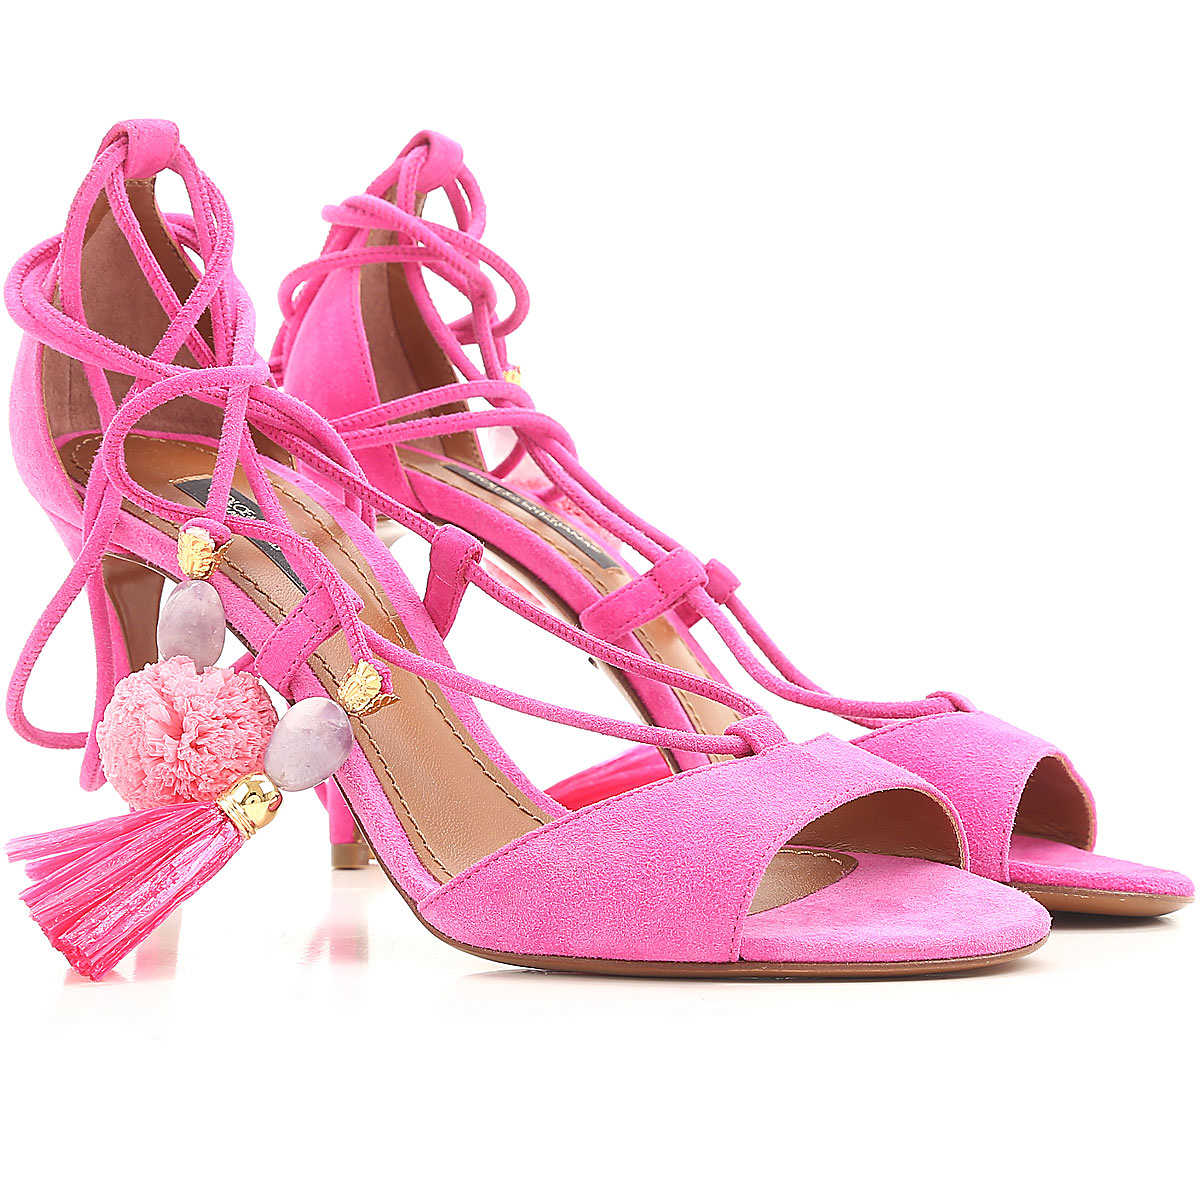 Dolce & Gabbana Sandals for Women On Sale in Outlet Fuchsia DK - GOOFASH - Womens SANDALS